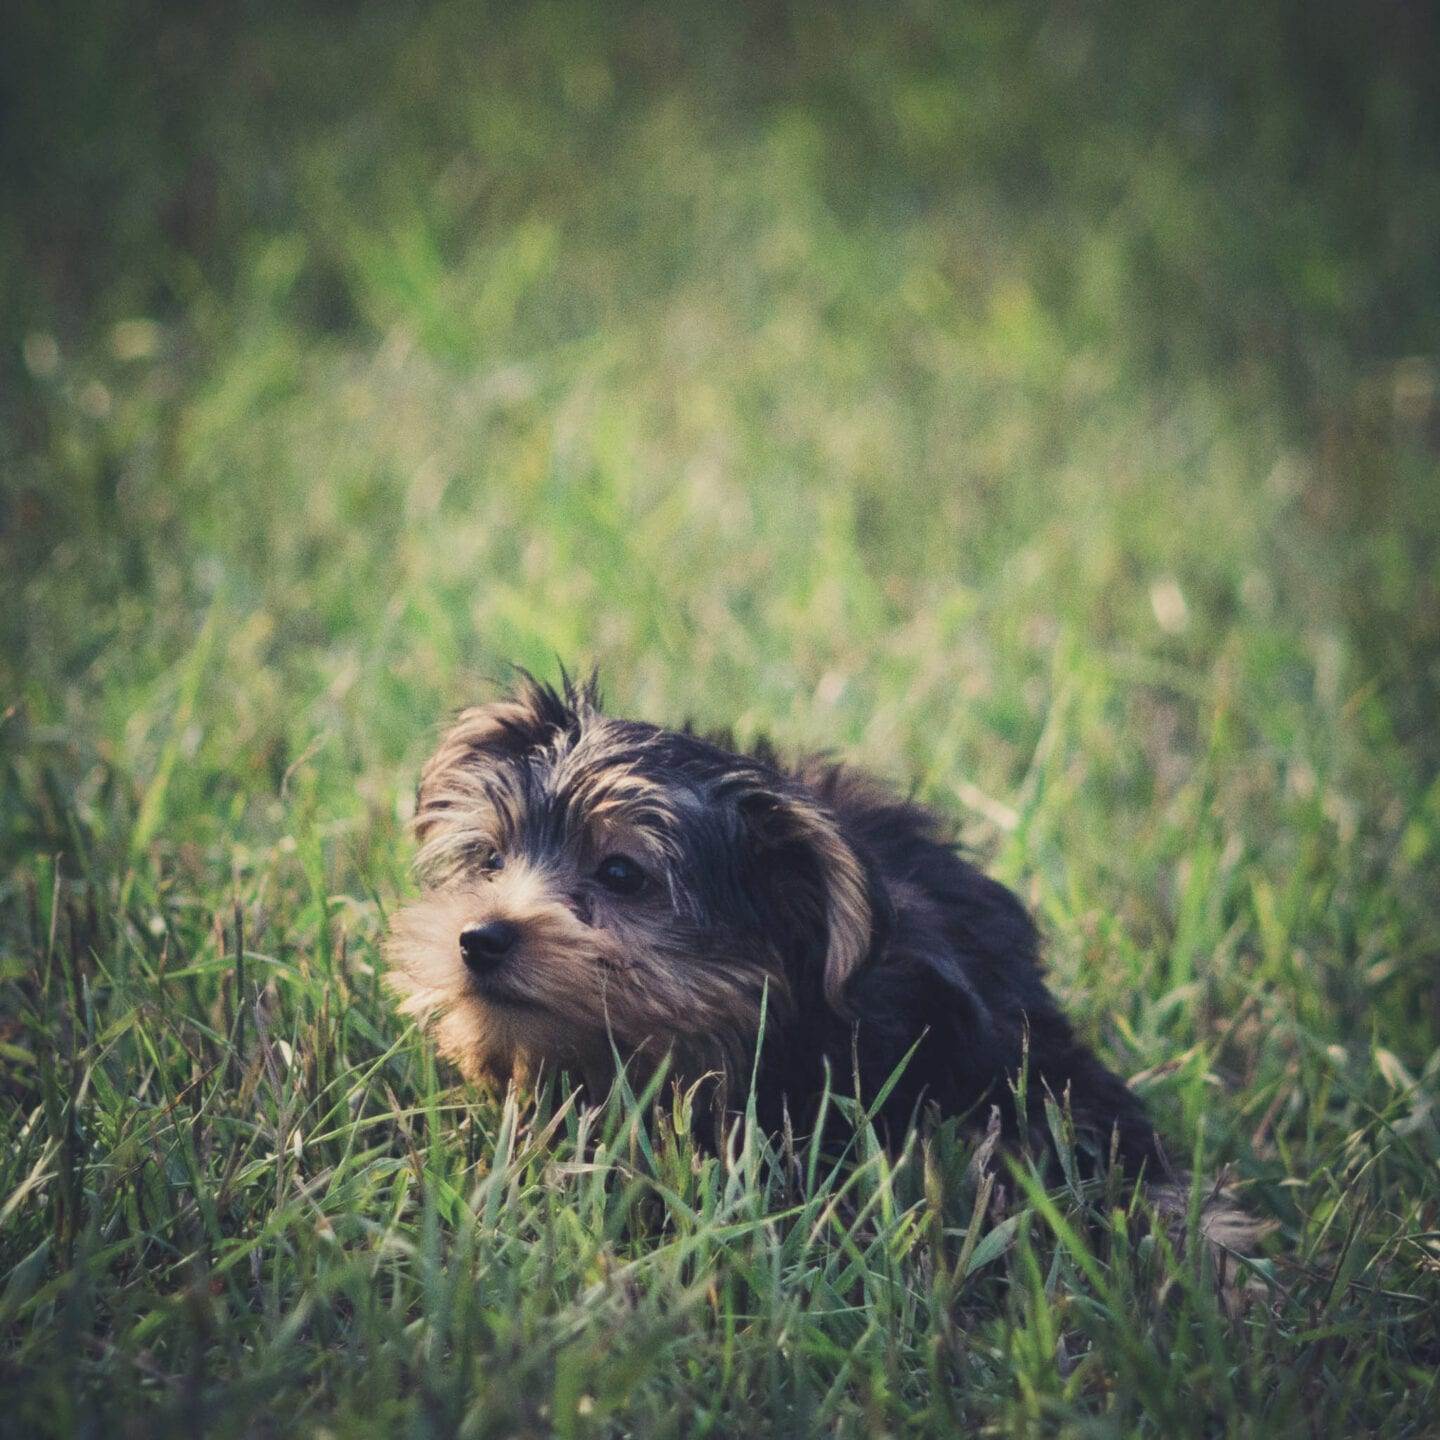 A baby yorkshire terrier got on the grass for the first time and explores its surroundings